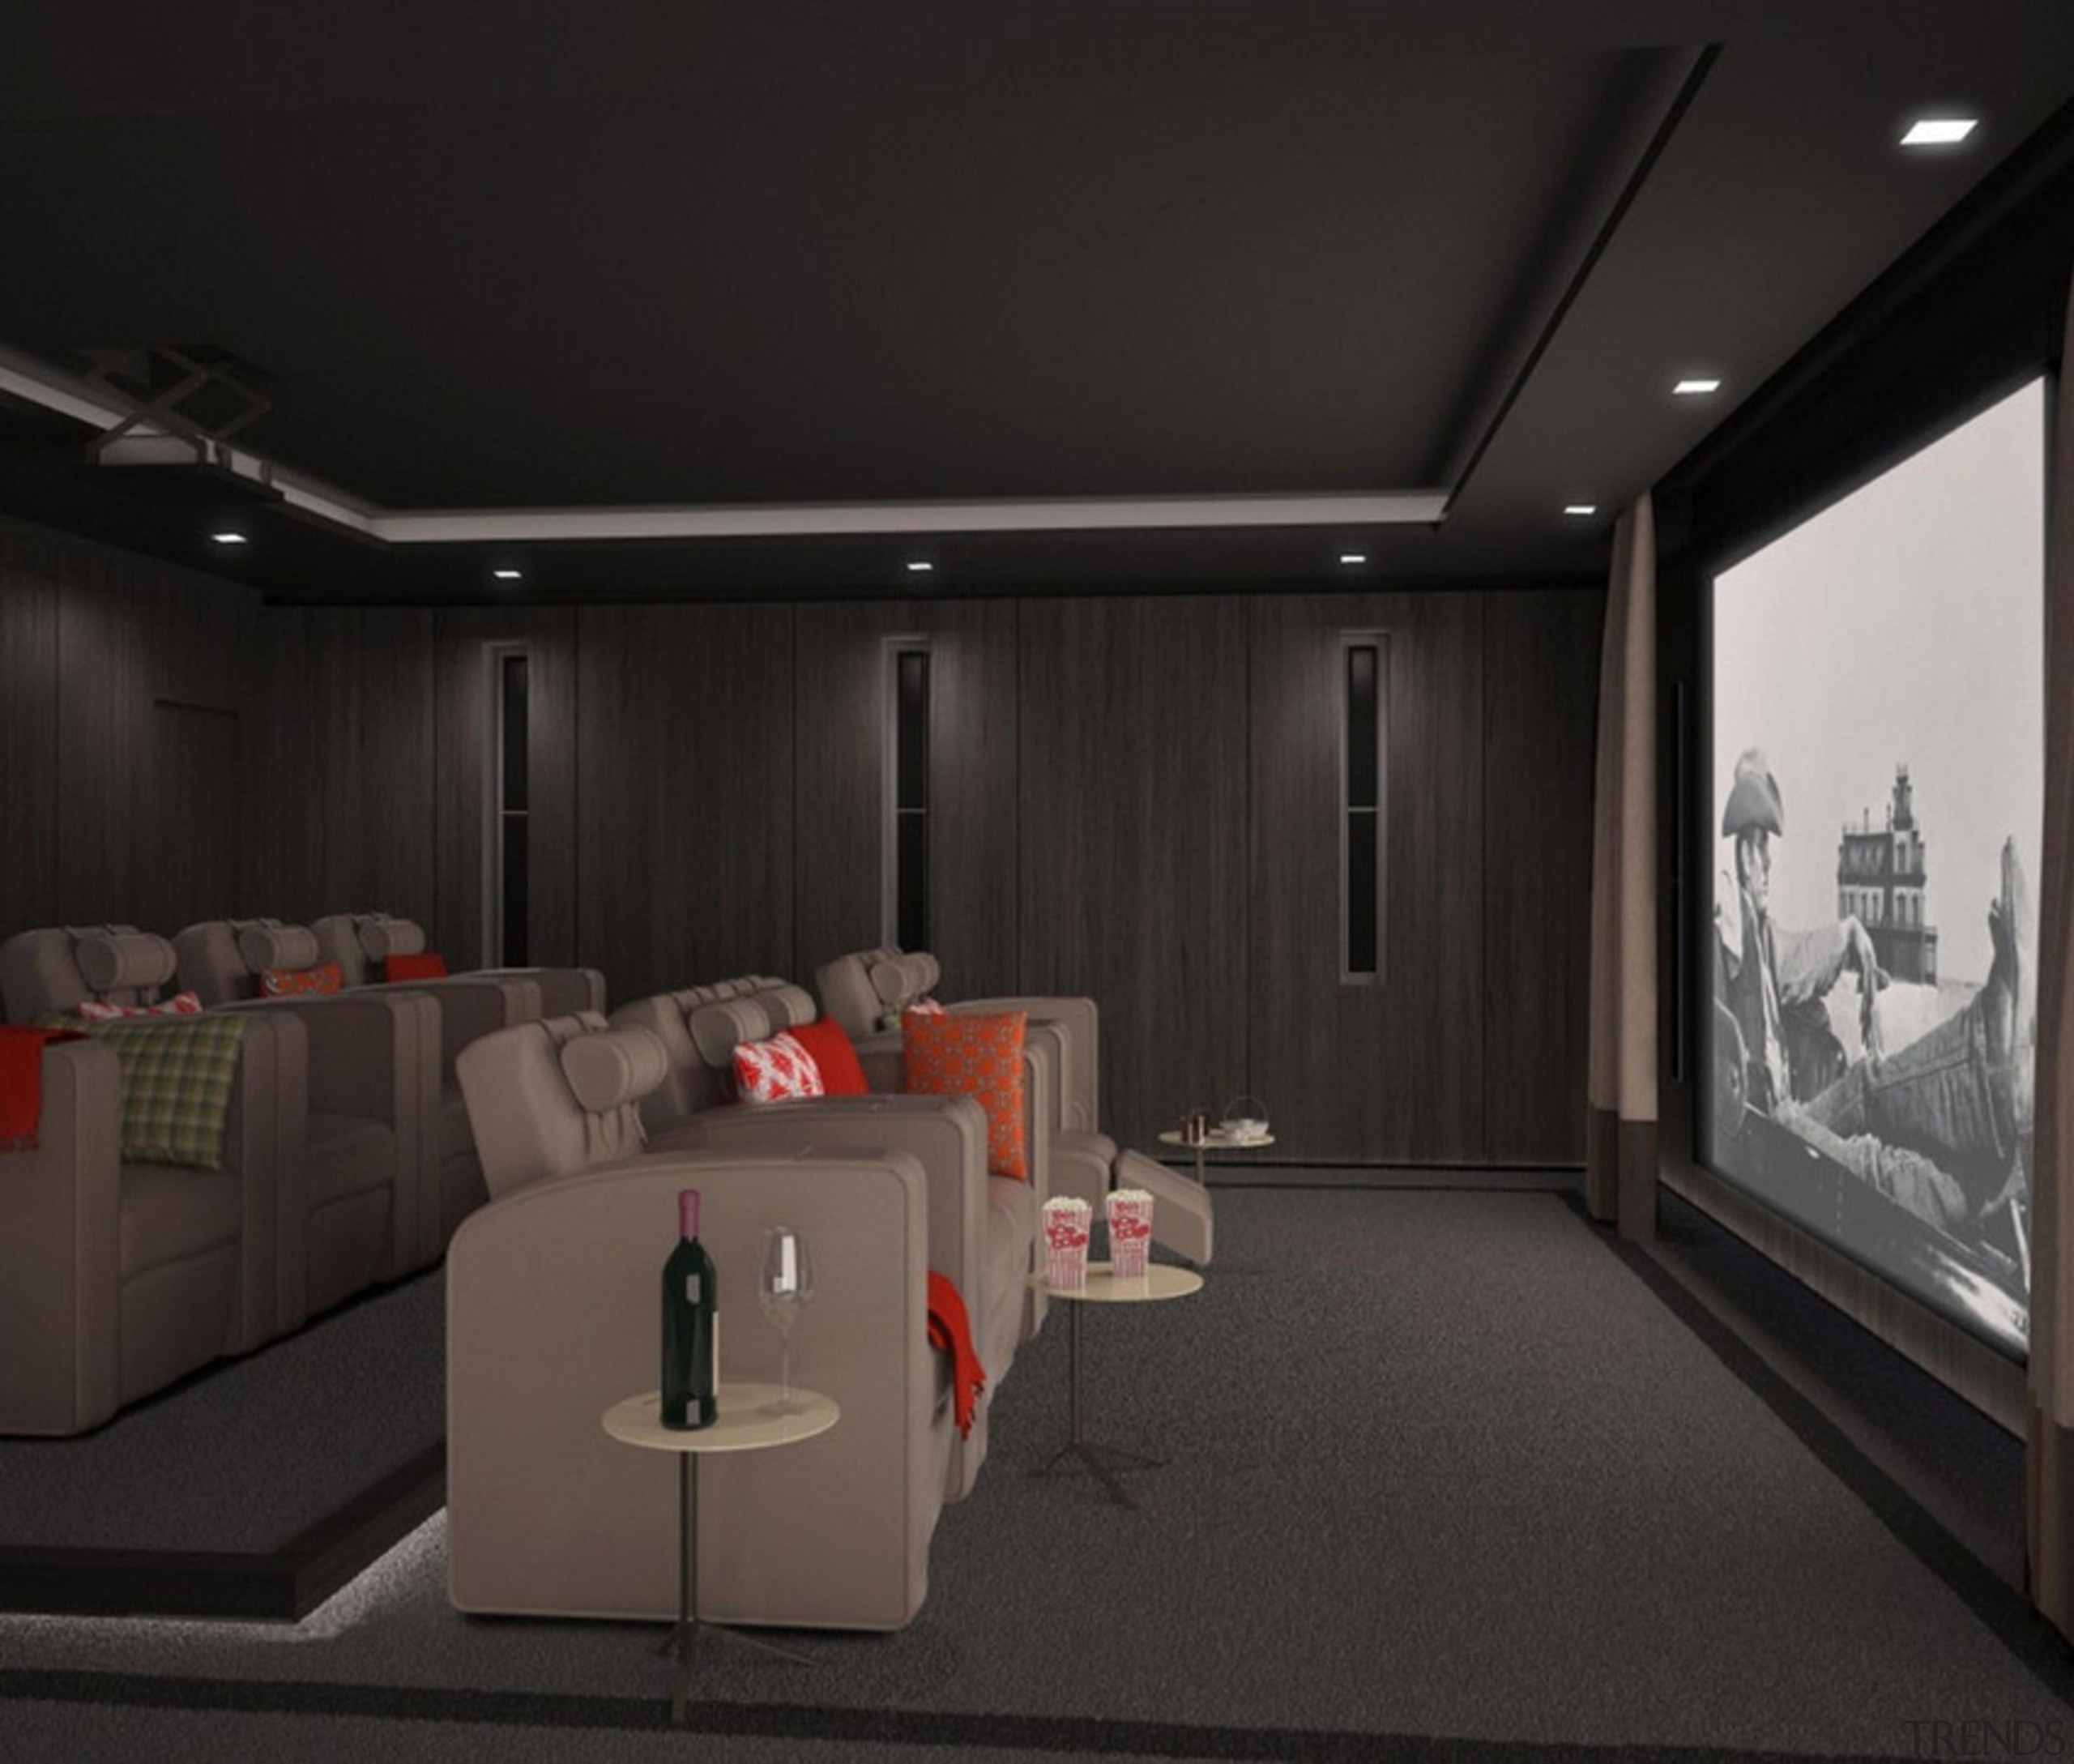 This new development The Chilterns is situated in ceiling, interior design, room, black